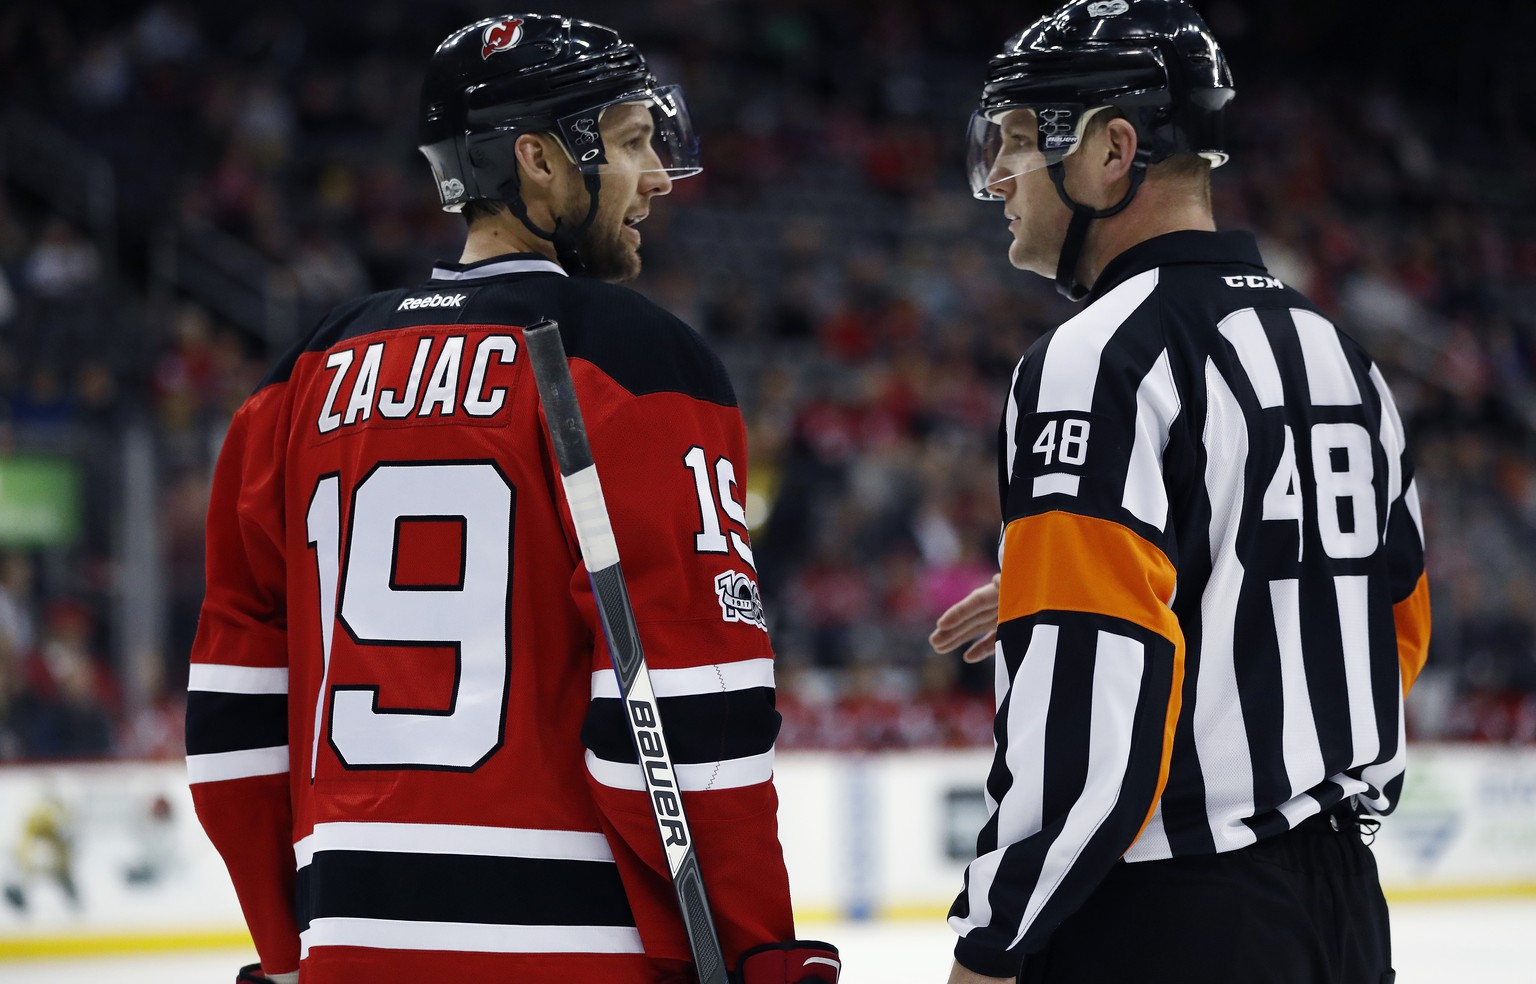 CORRECTS ID TO CHRIS SCHLENKER NOT GARRETT RANK FILE - This March 28, 2017, file photo shows New Jersey Devils center Travis Zajac, left,  talking to referee Chris Schlenker during the first period of an NHL game, in Newark, N.J. (AP Photo/Julio Cortez, File)